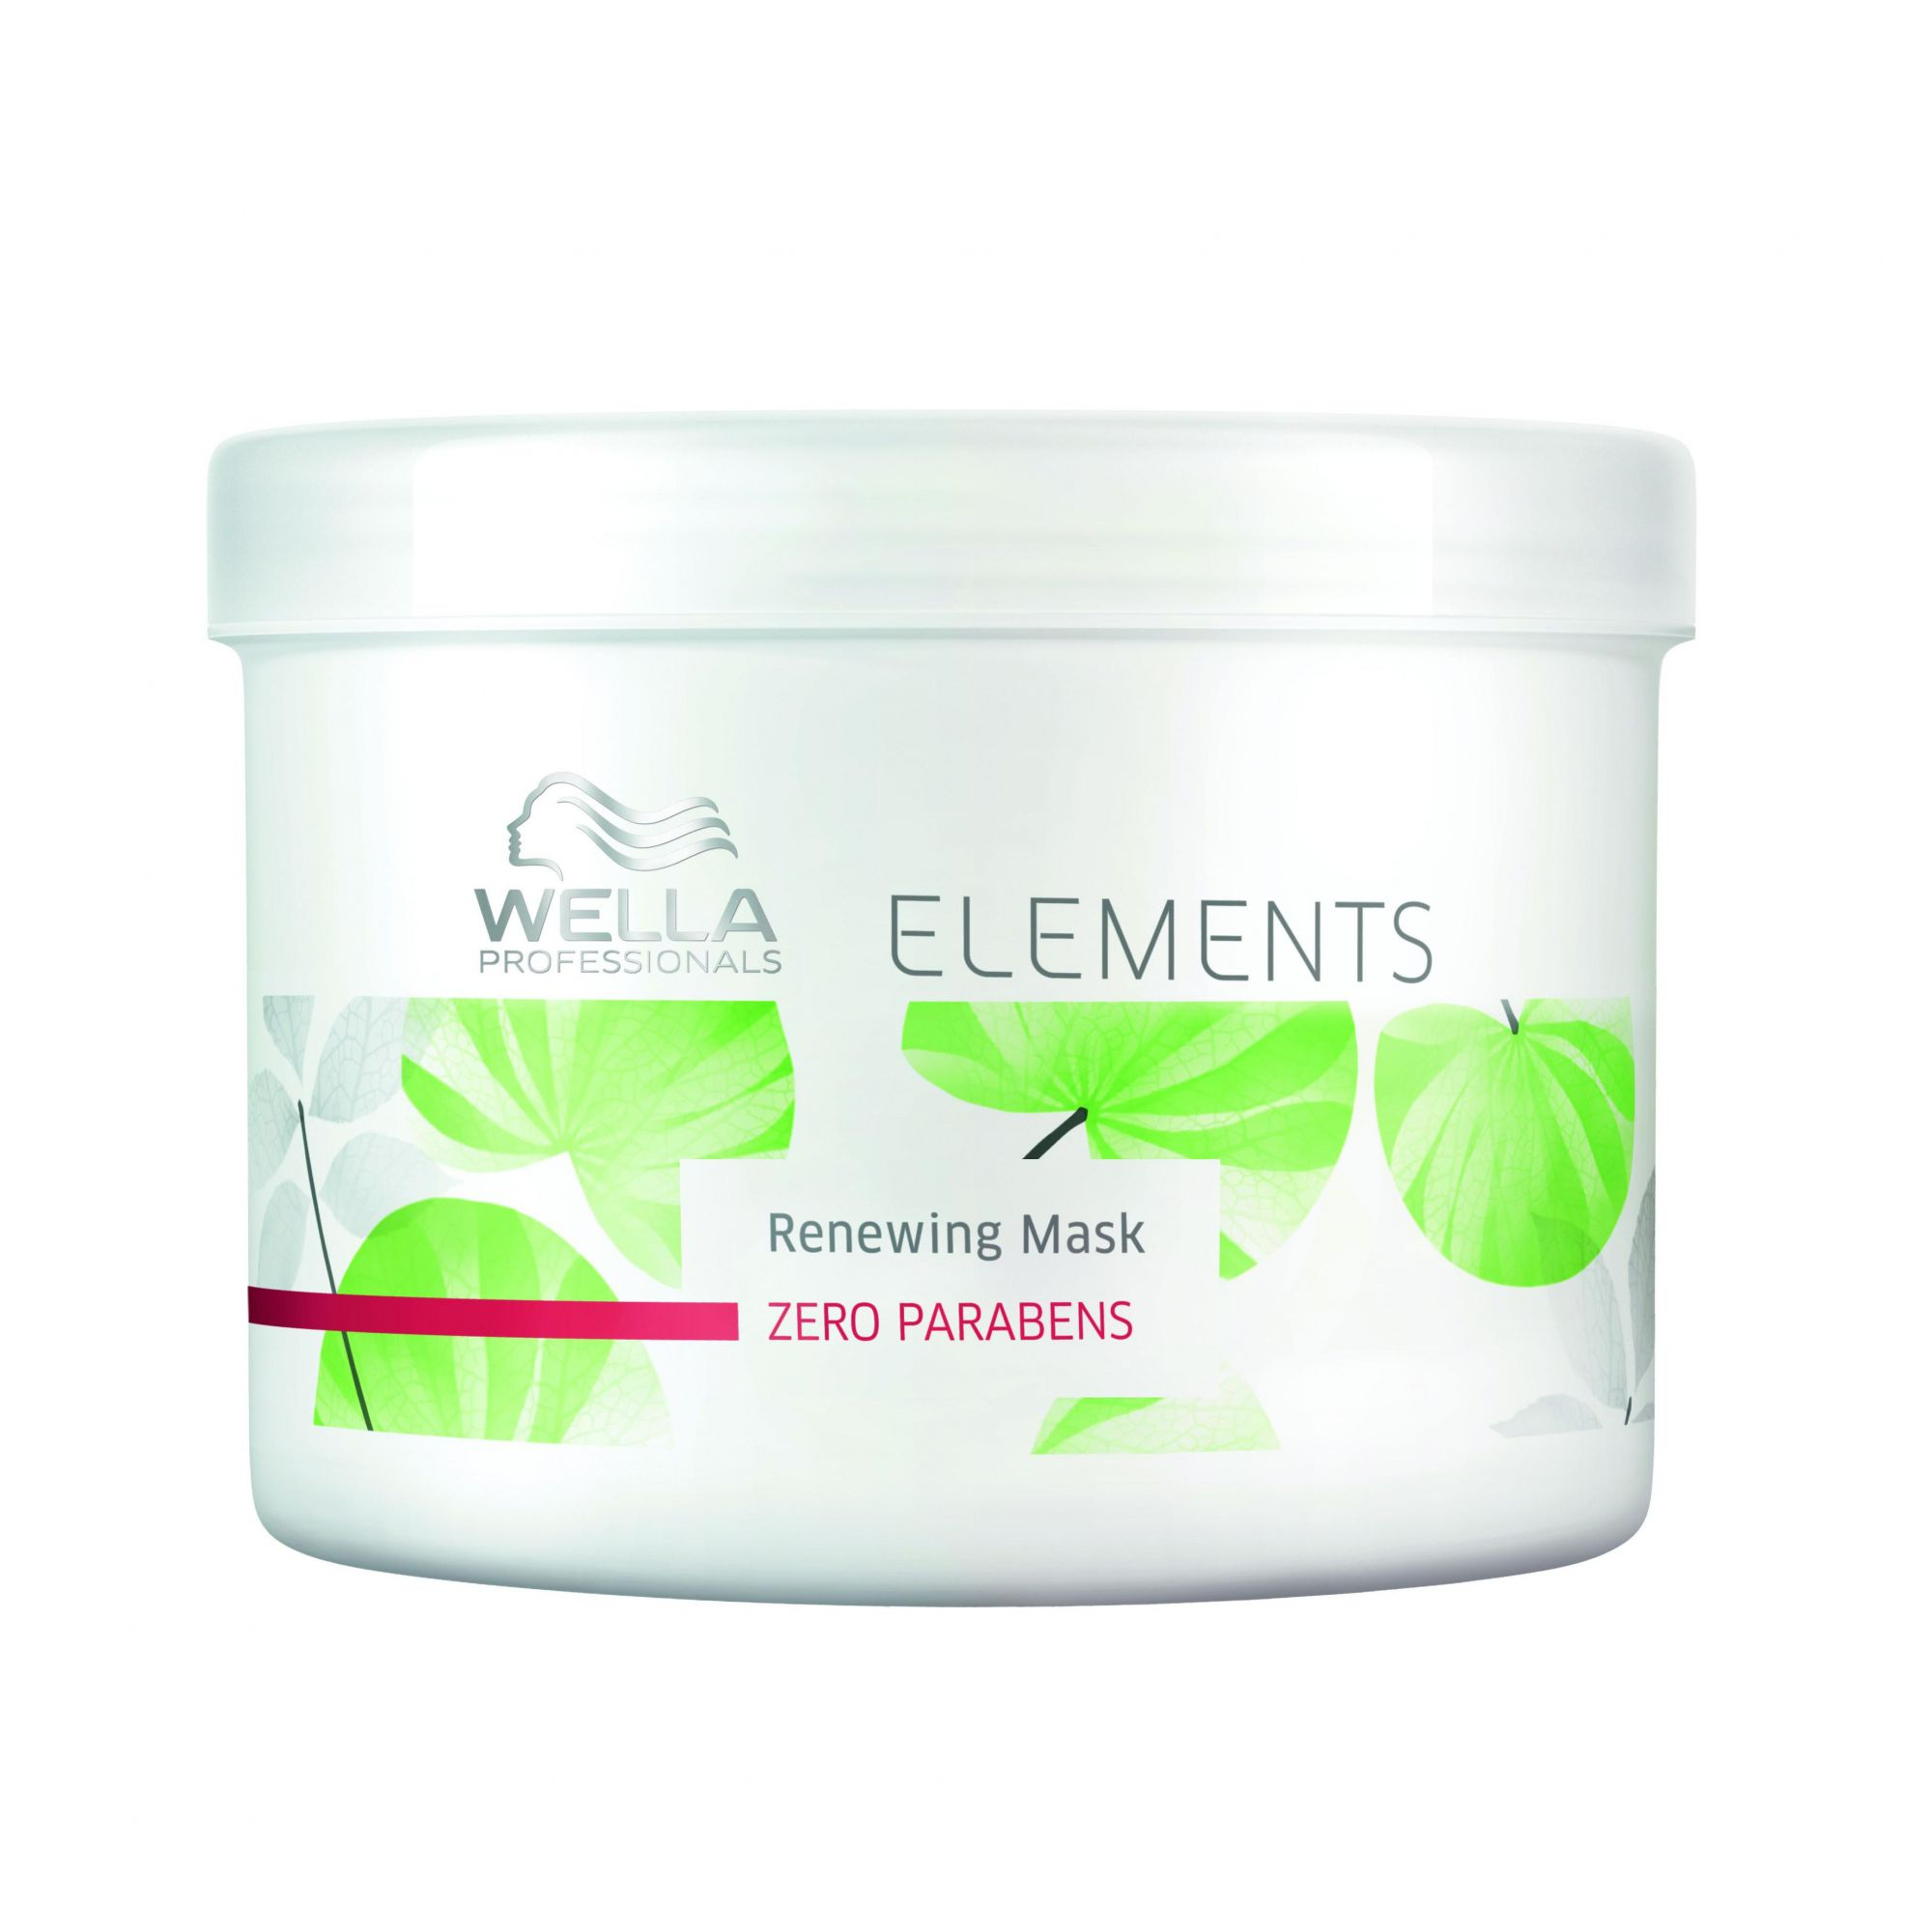 Wella Professionals Elements Máscara Renovadora 500ml